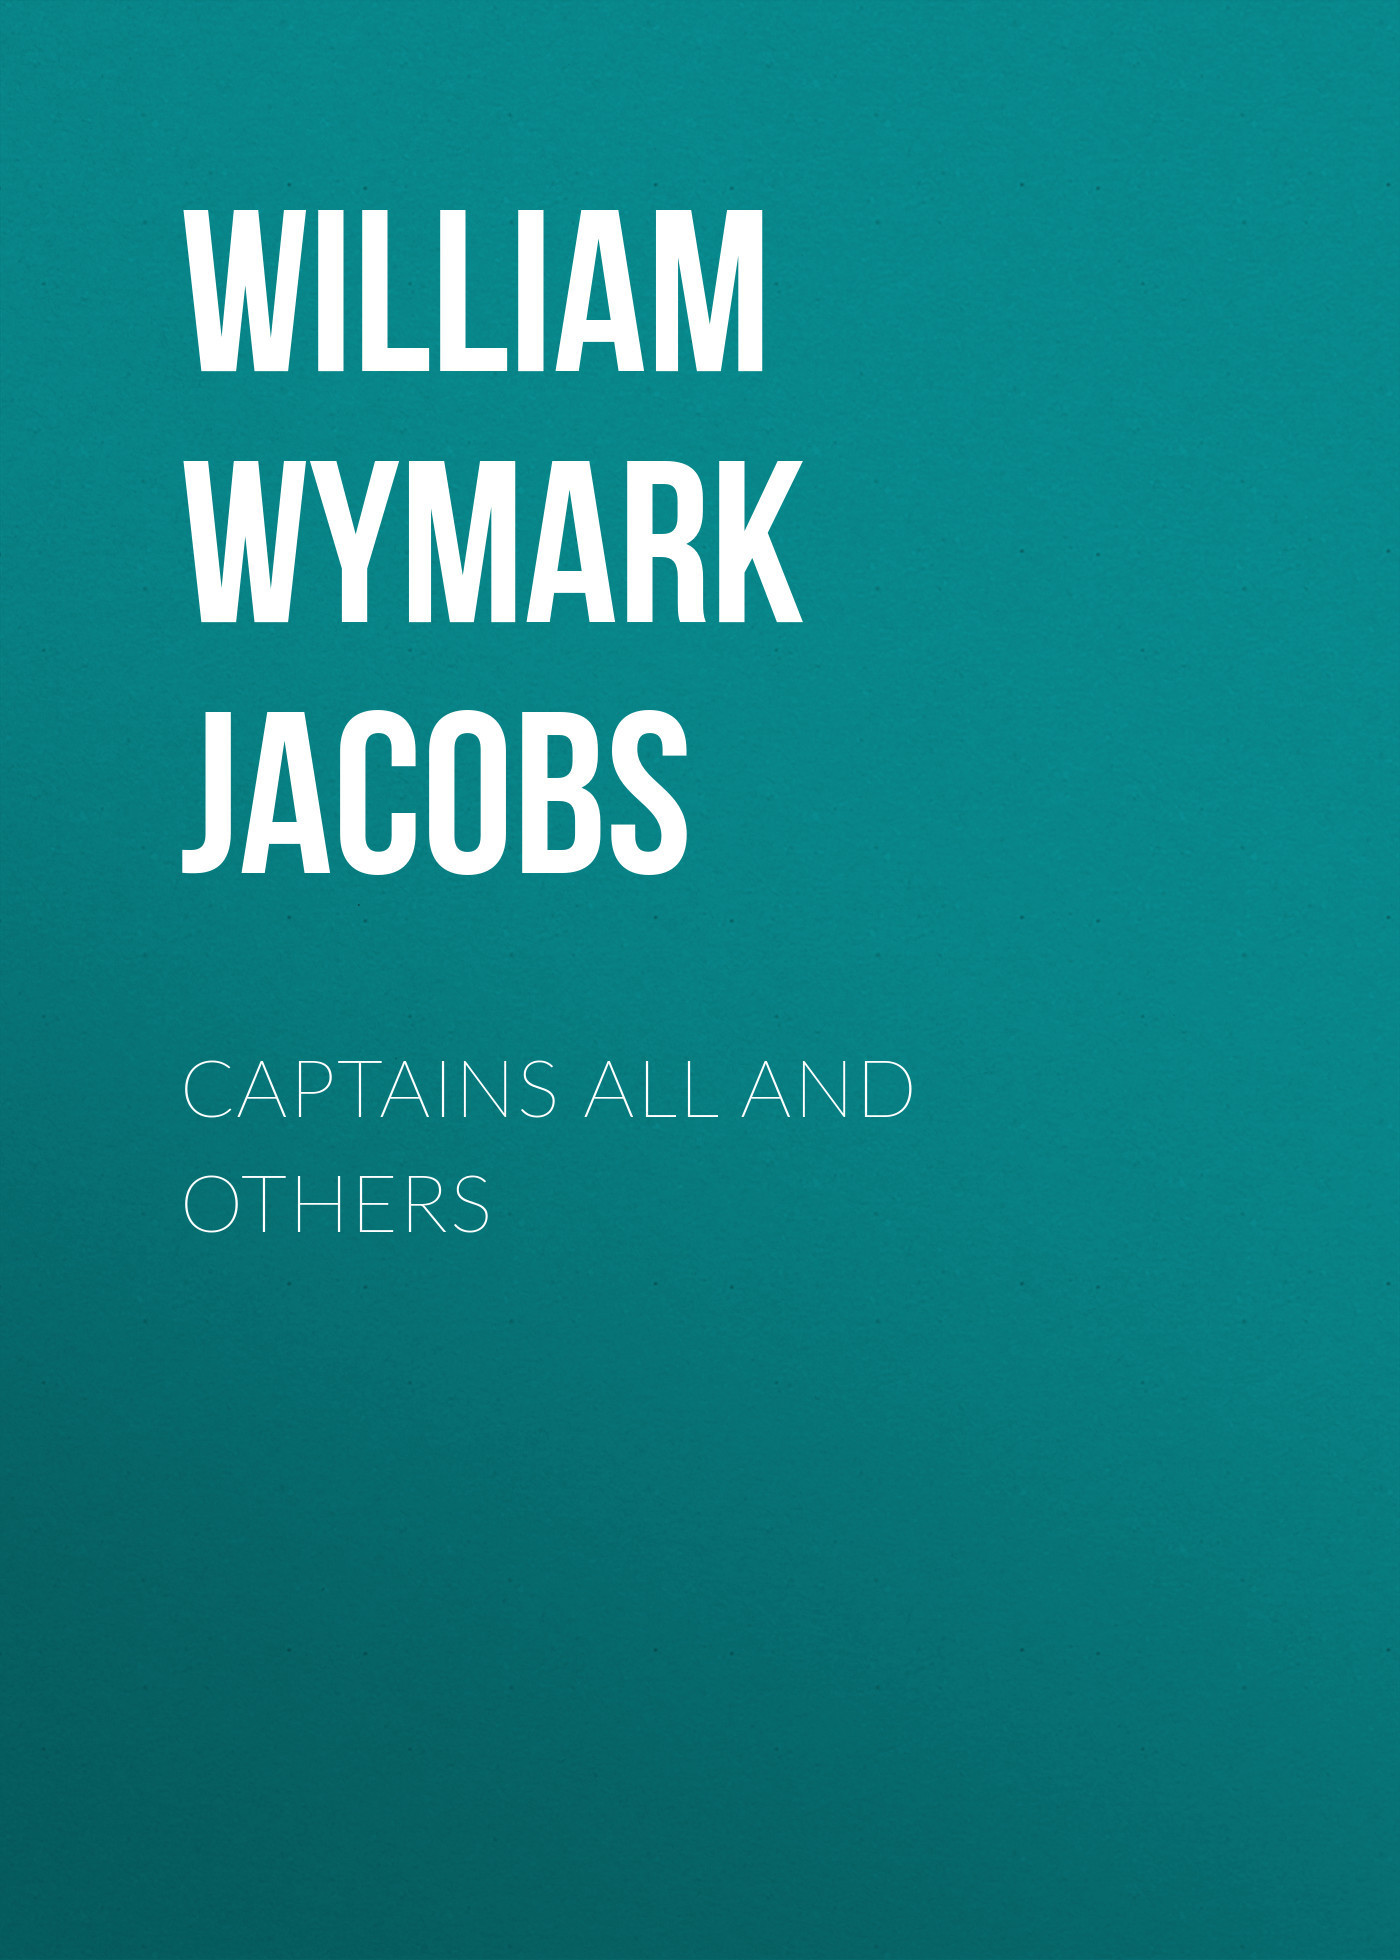 William Wymark Jacobs Captains All and Others картина others 60x60cmx3pcs diy hd0642